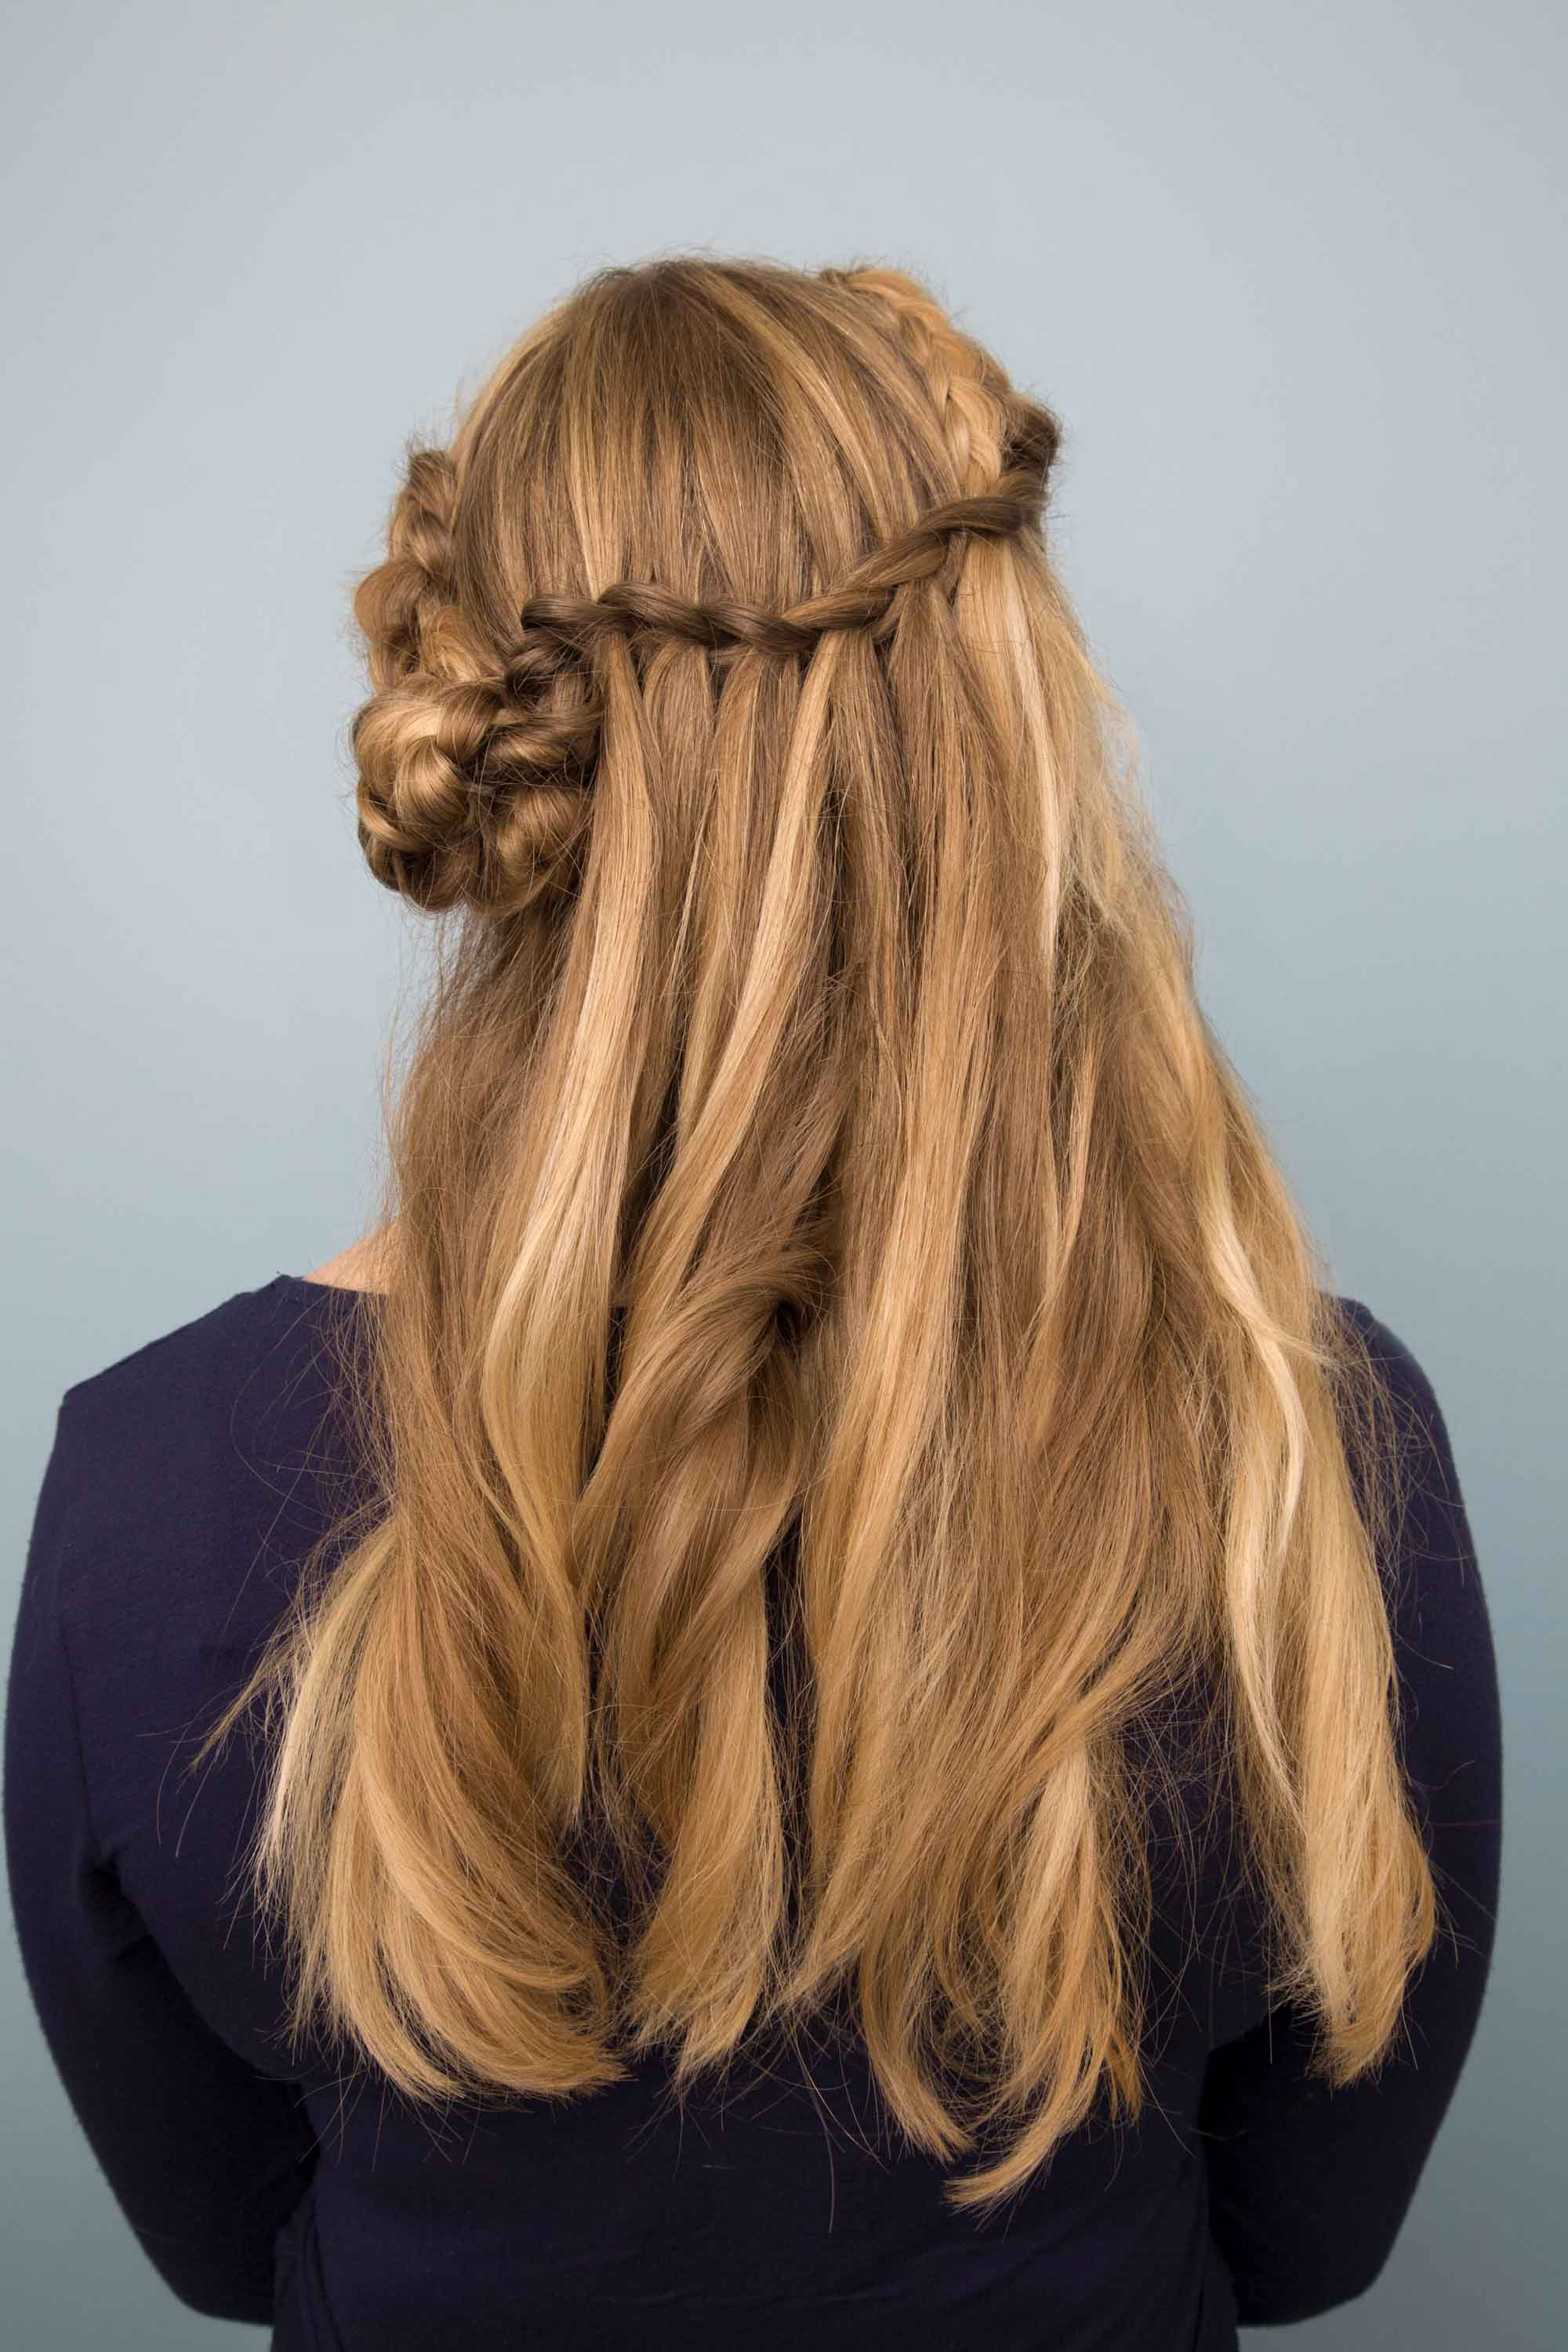 One Look to Rule 'Em All: 24 Renaissance Hairstyles That ...